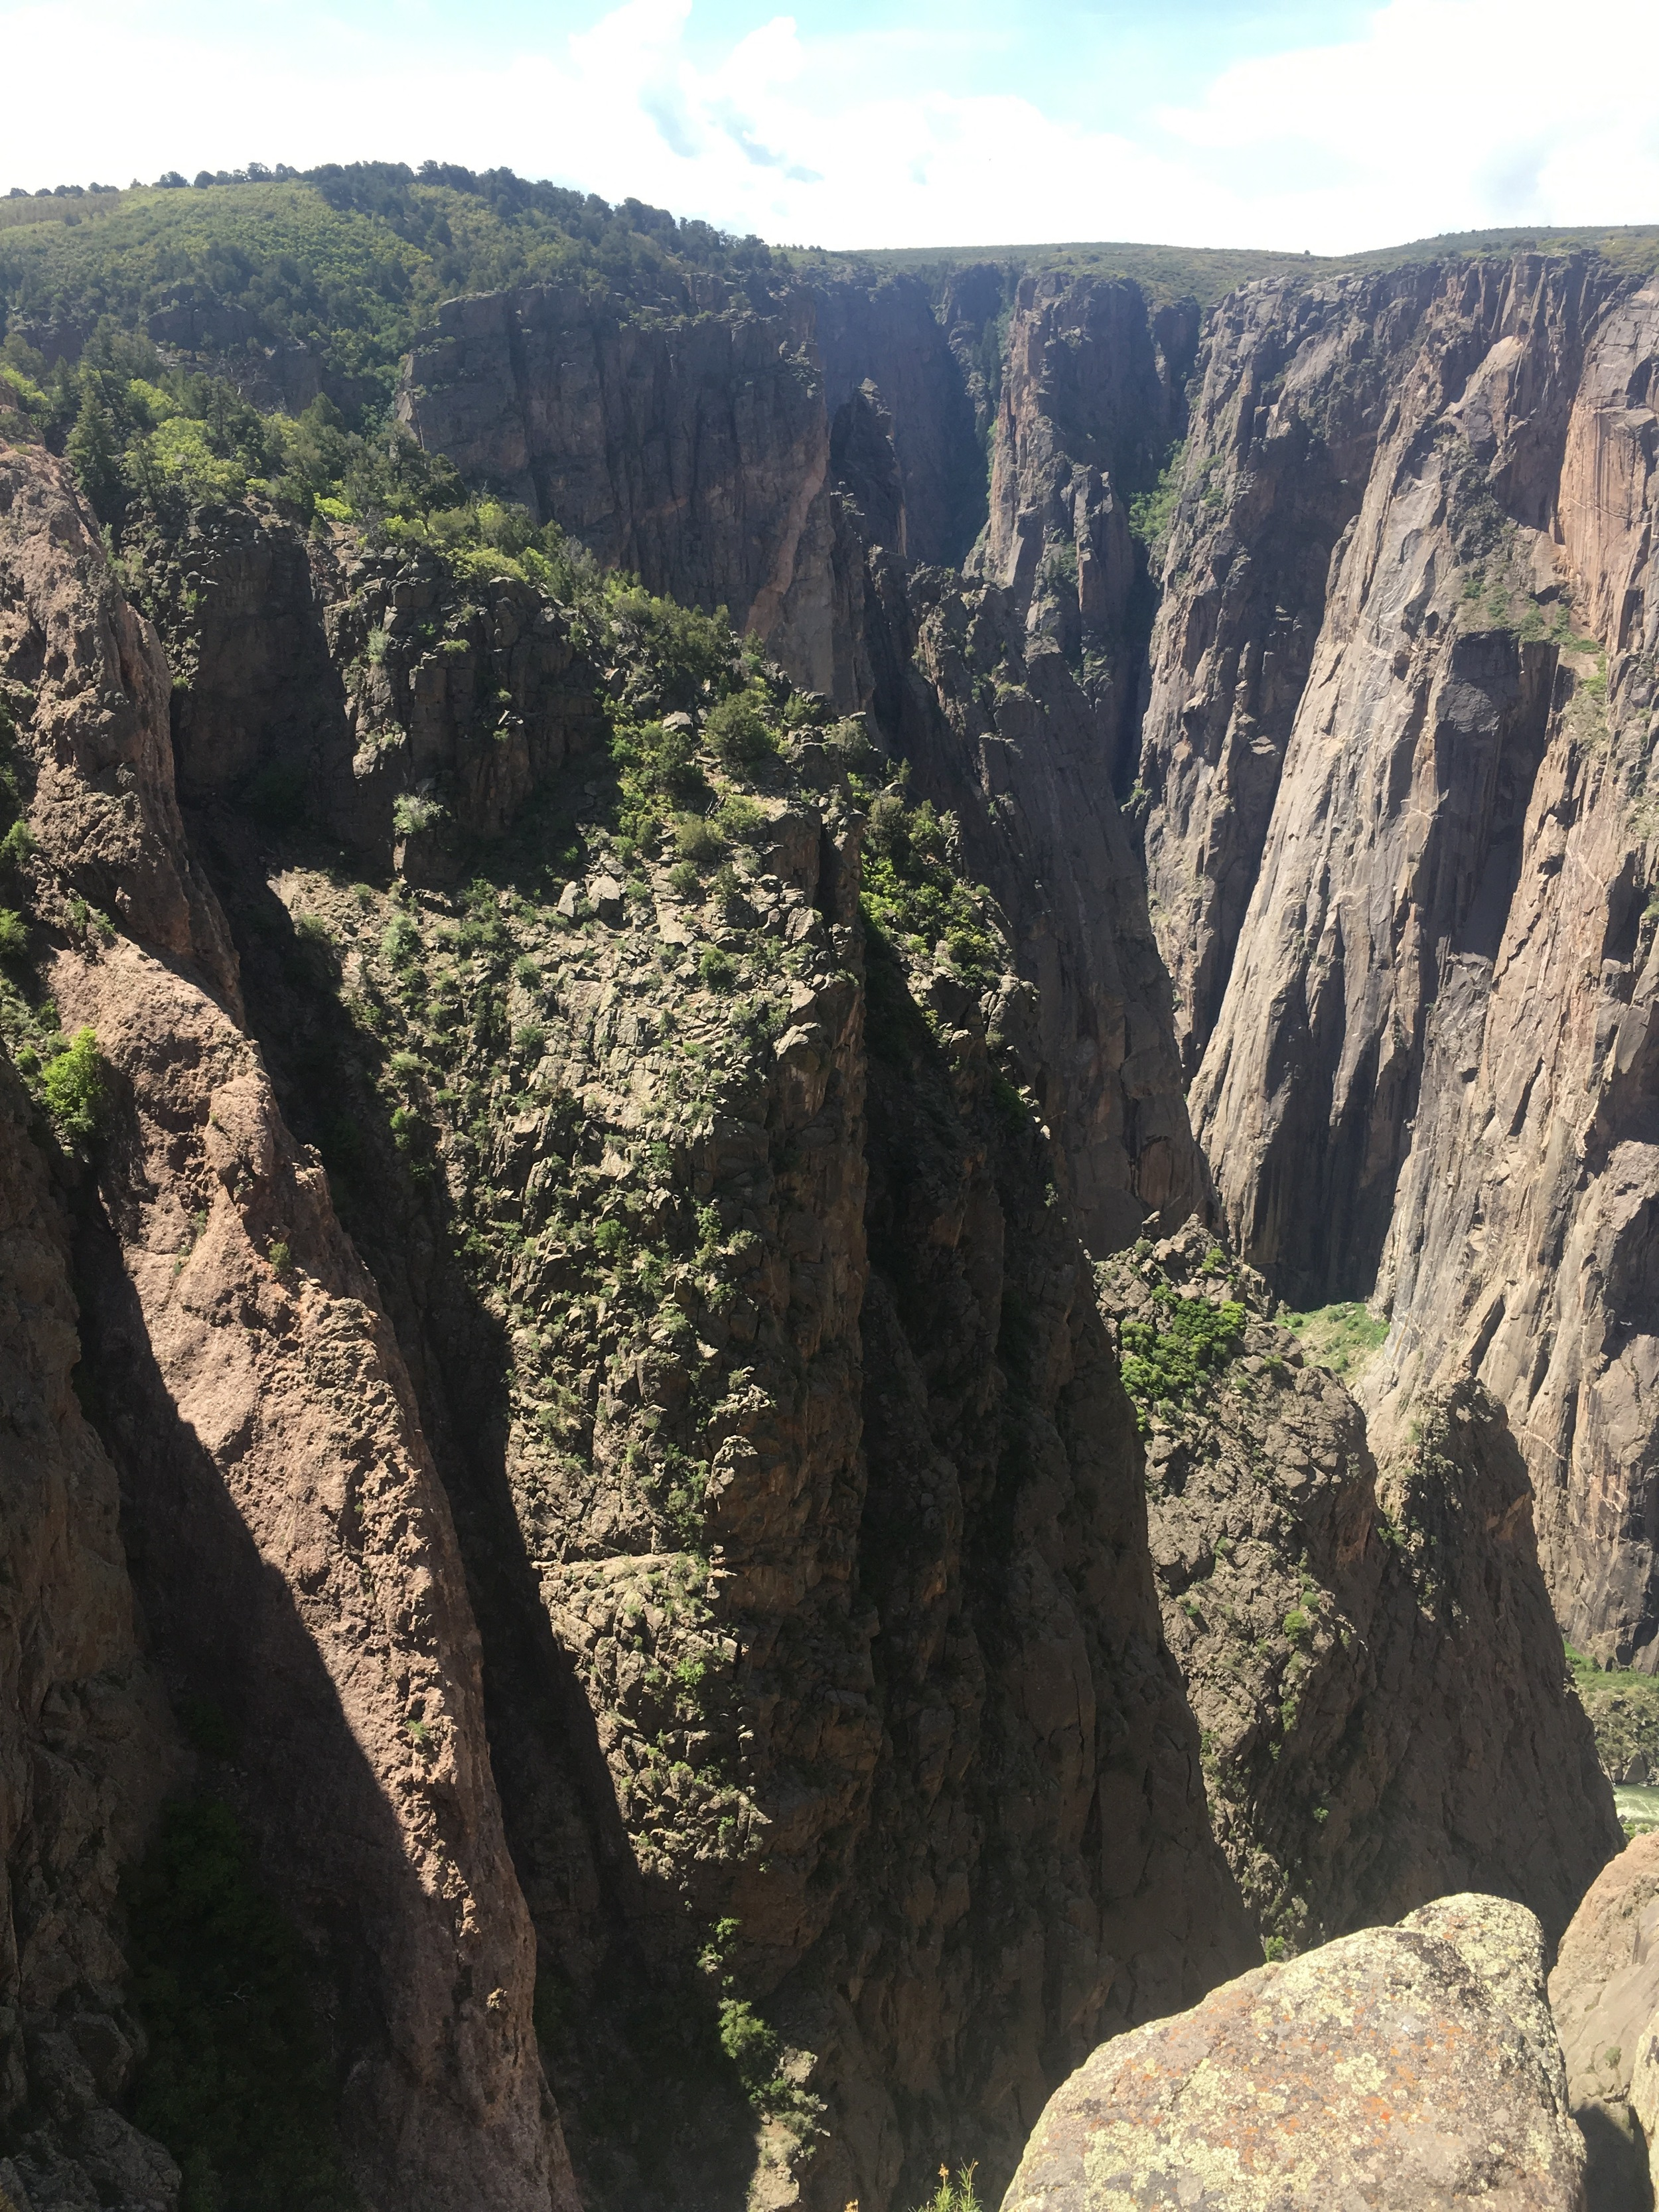 The overlapping canyon walls constantly look like they are caving in on themselves, crushing the open space.